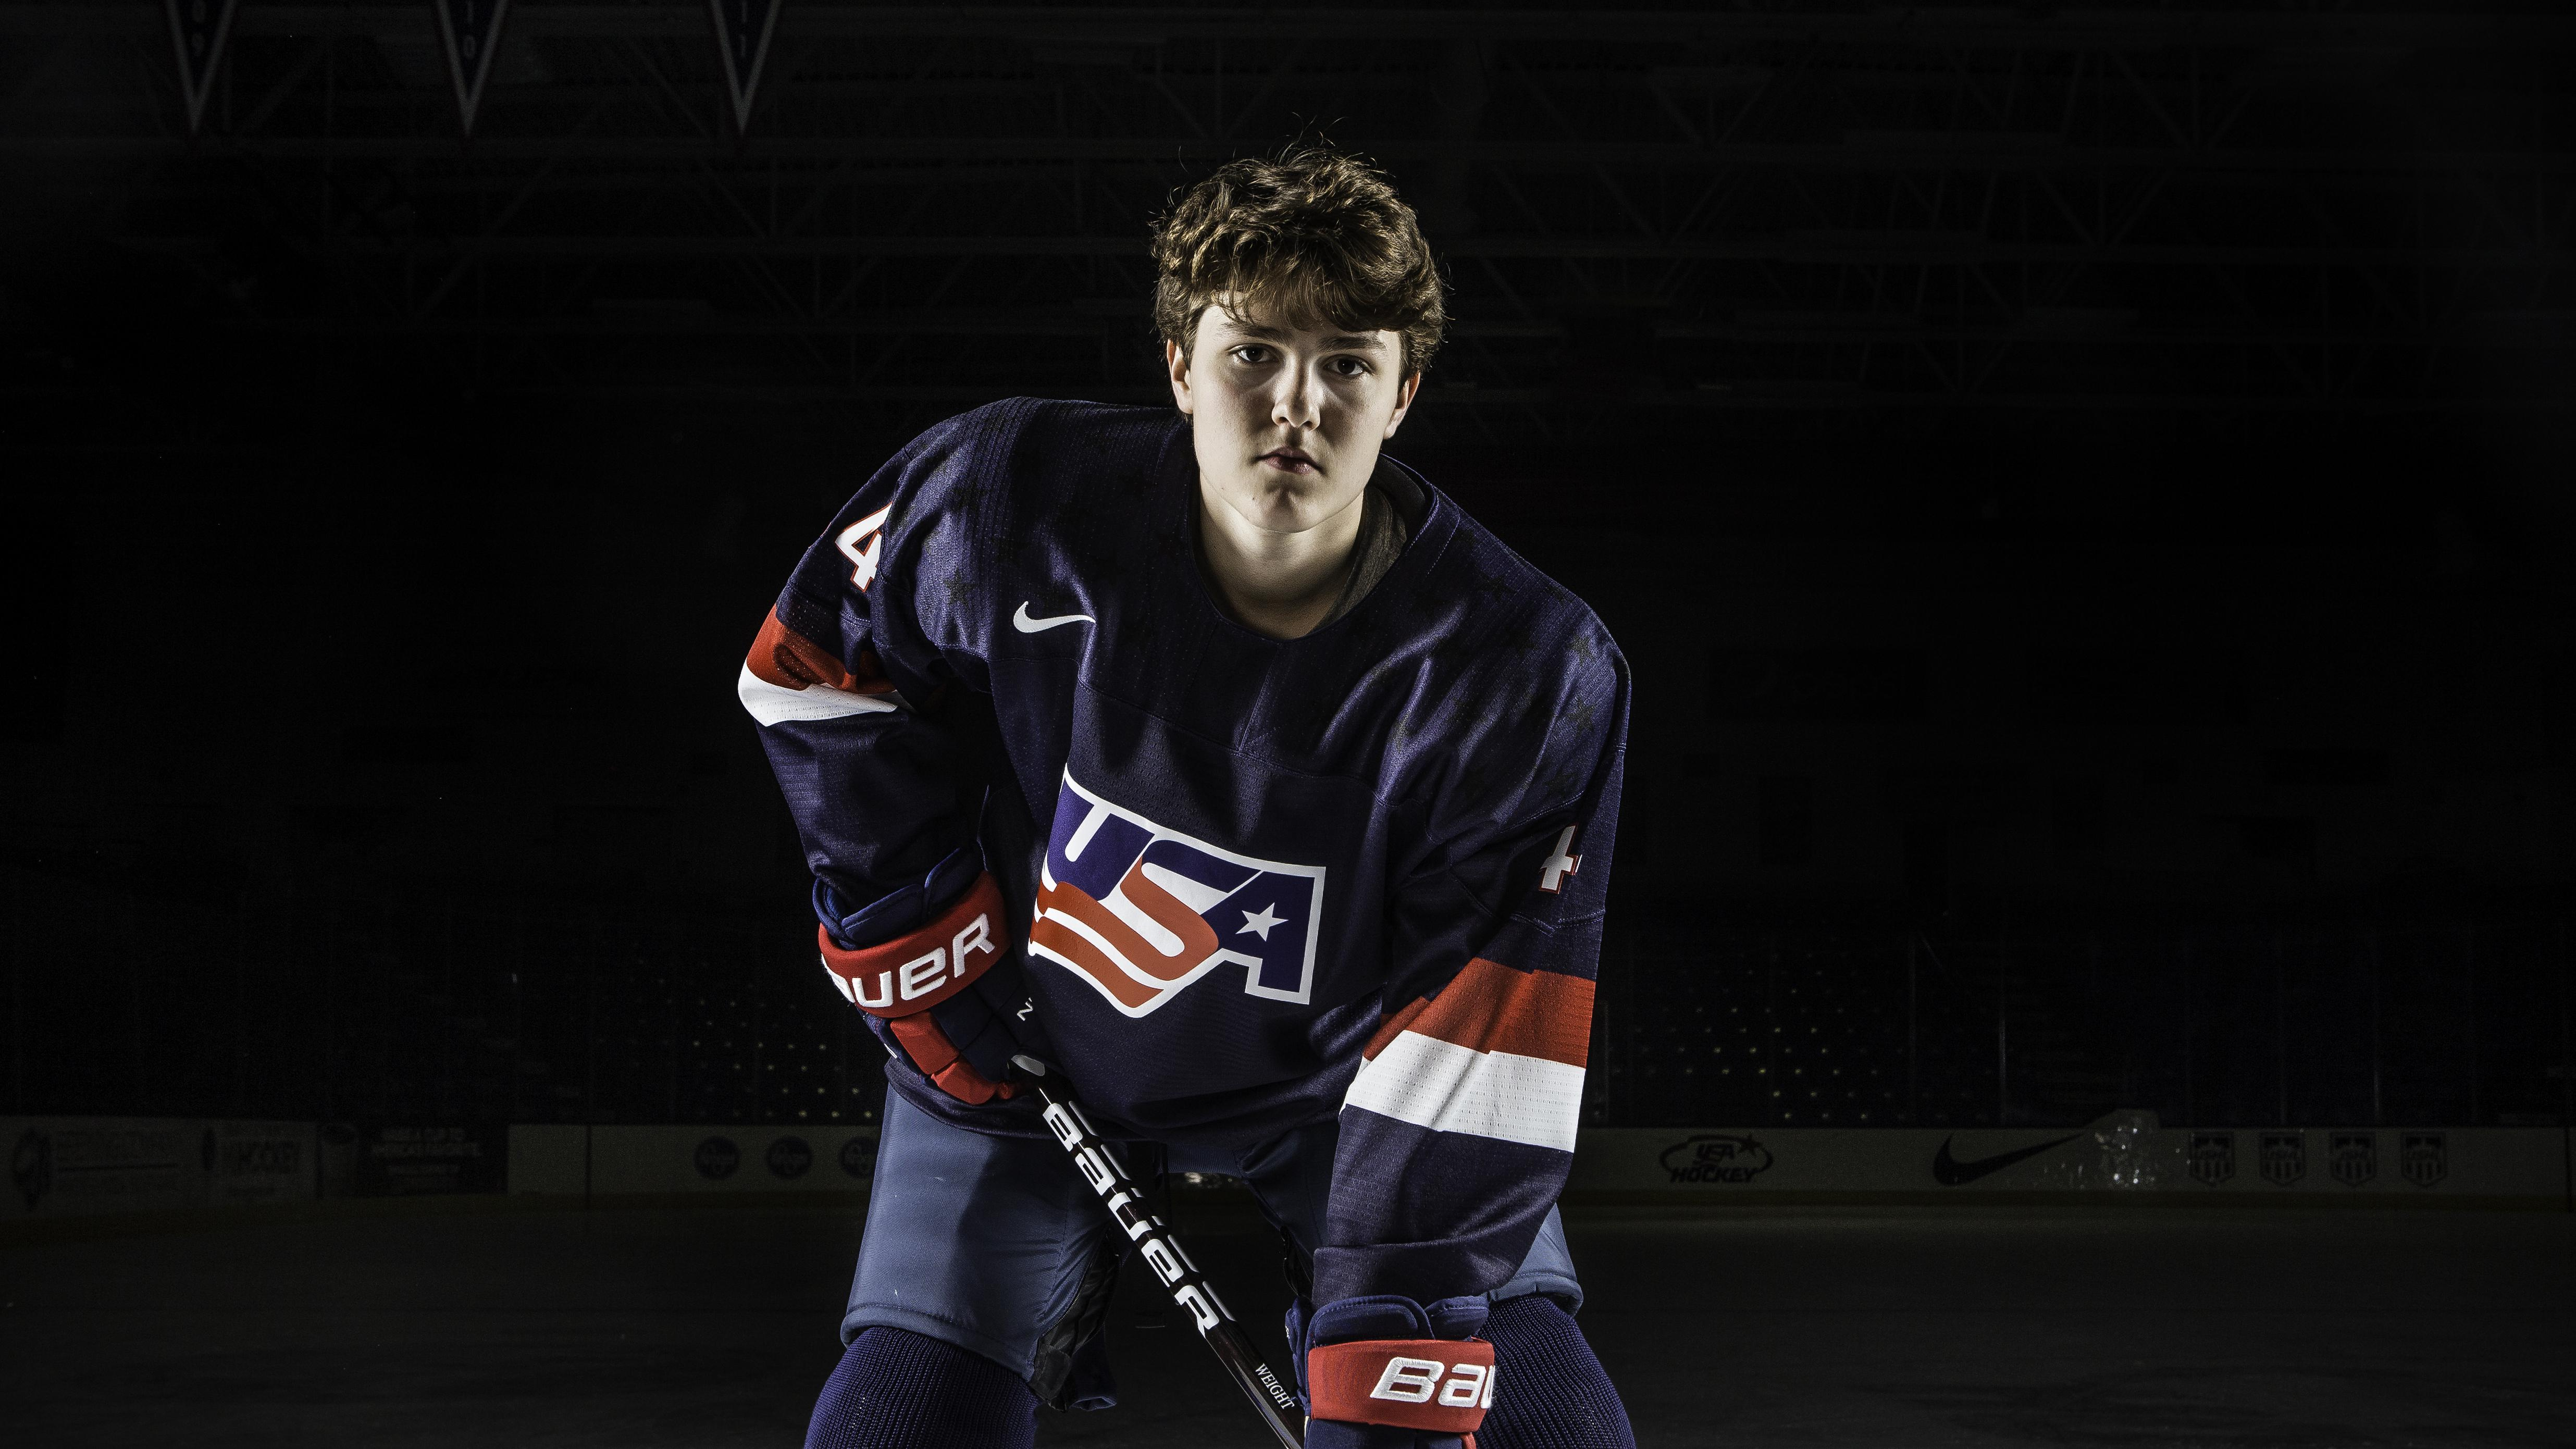 f6ead4b1 Danny Weight's Family Helps Him Reach His Potential on the Ice